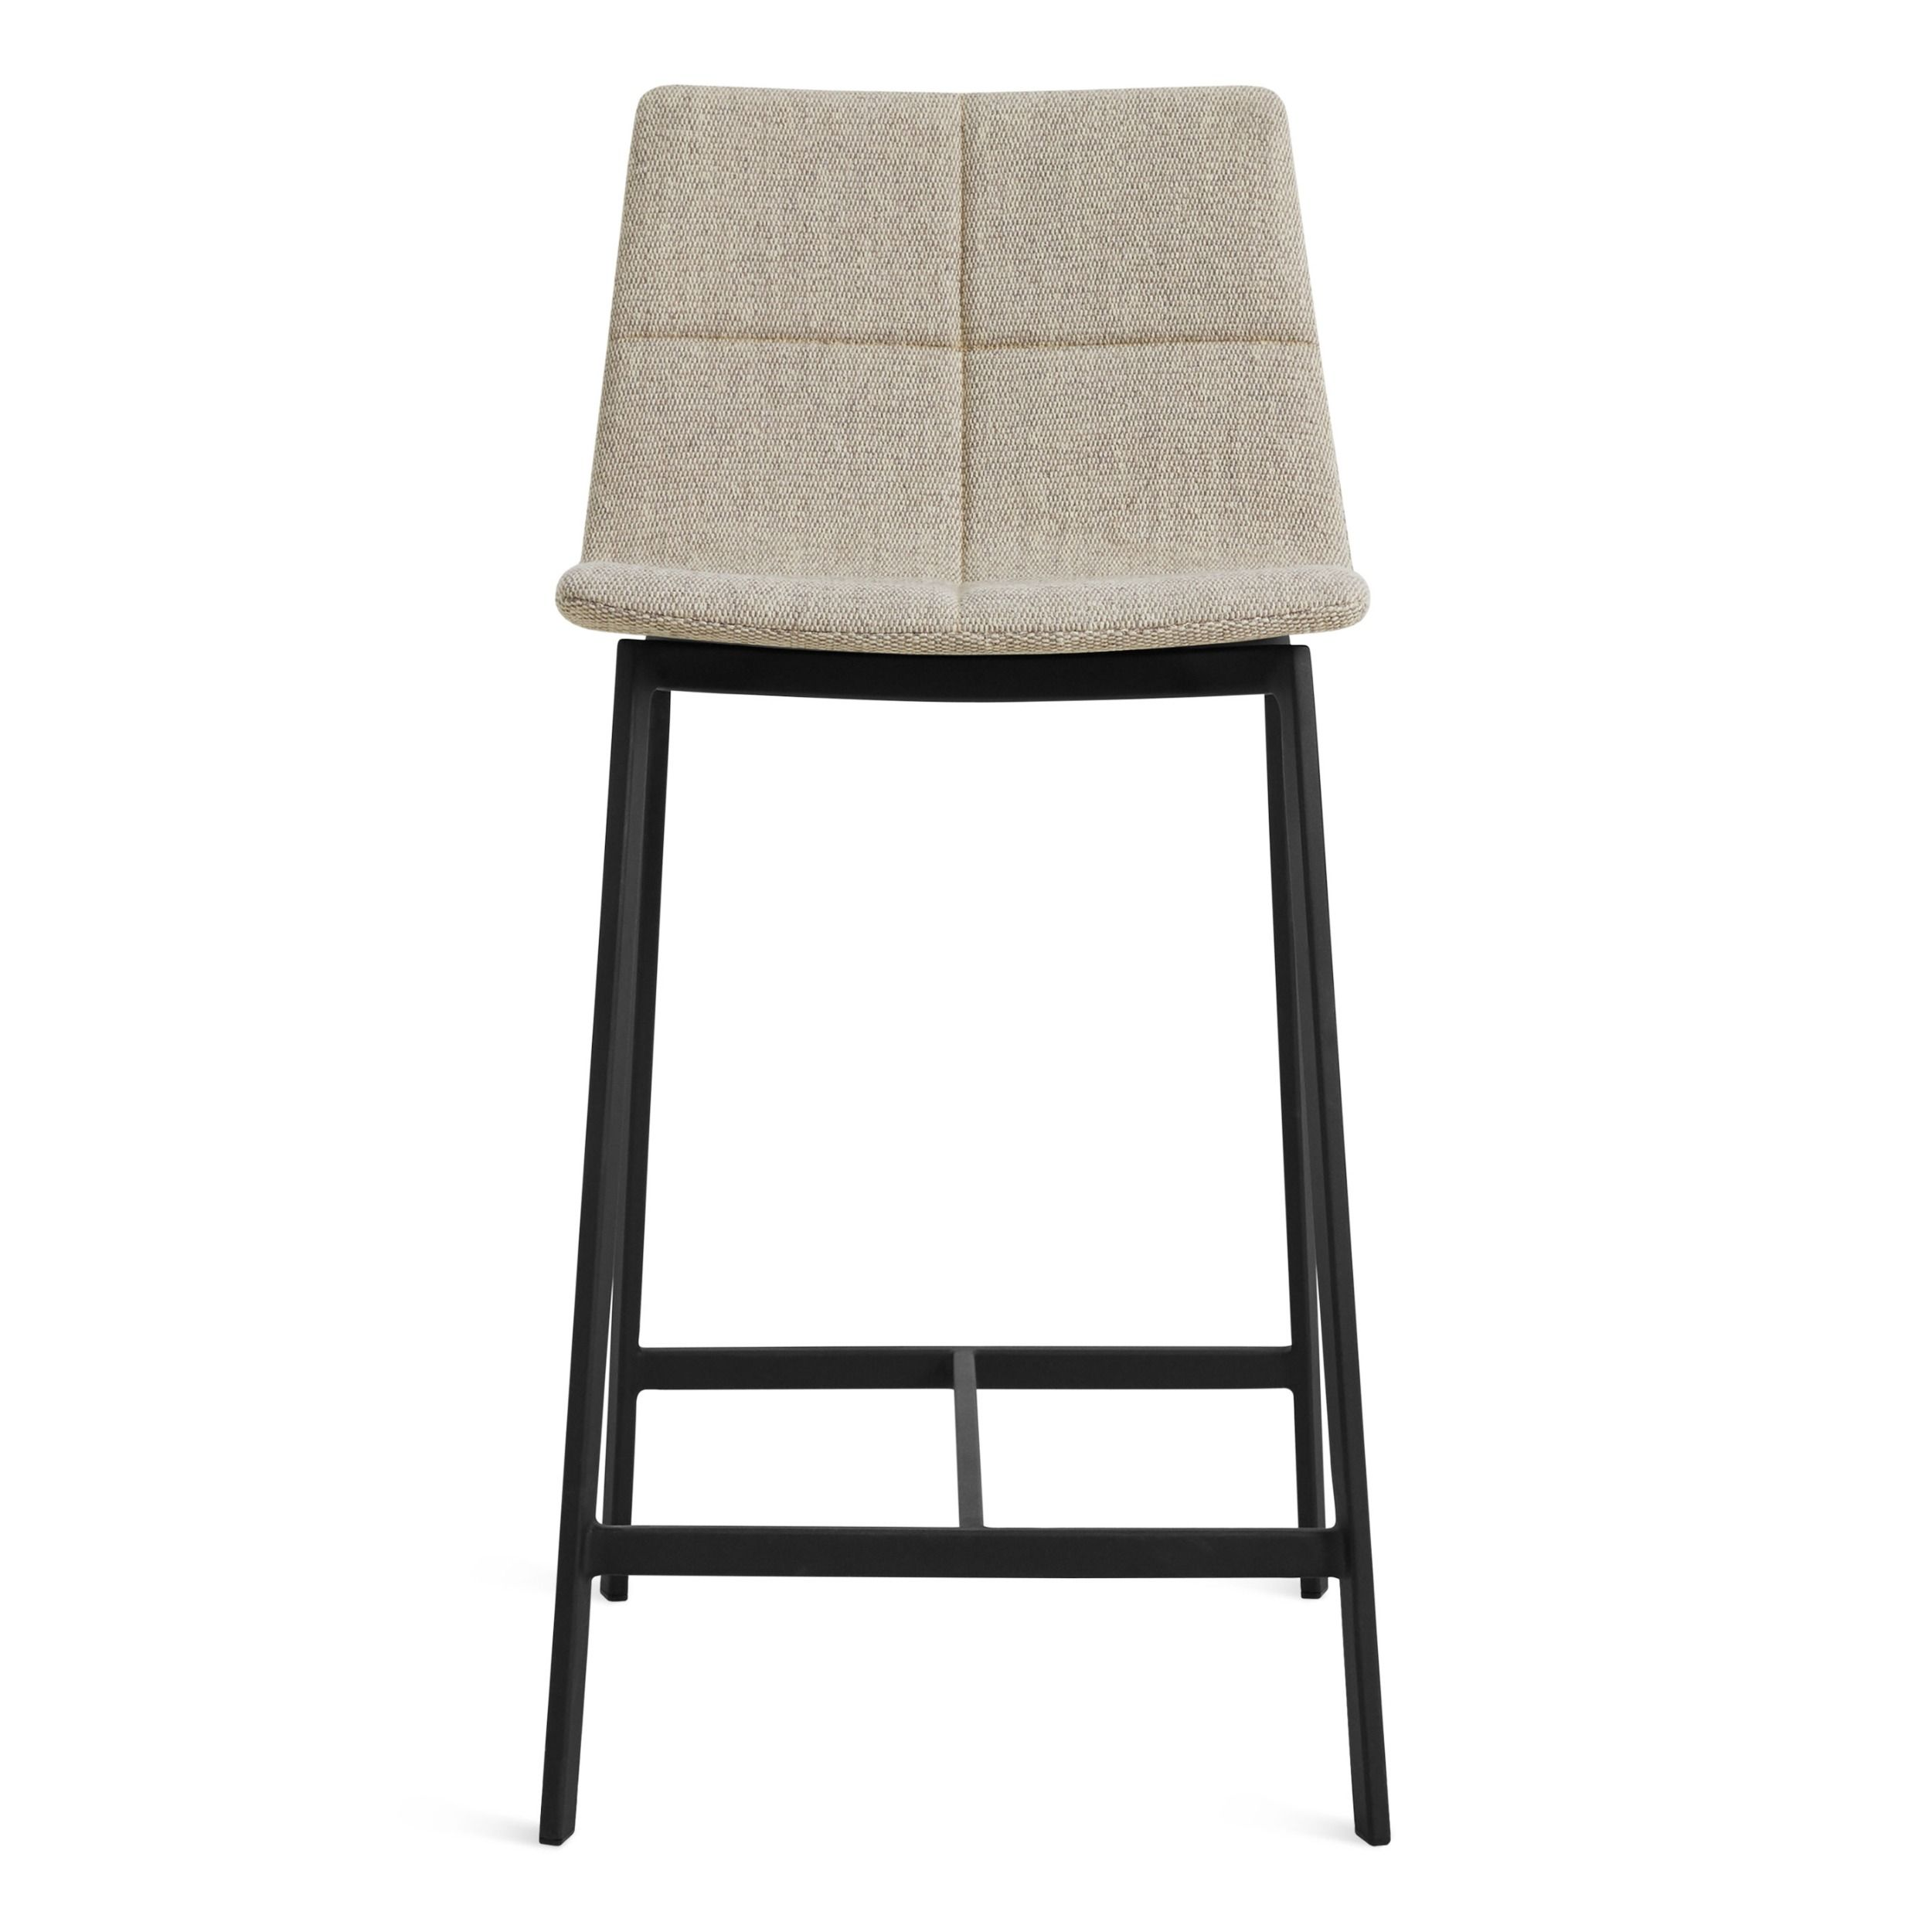 Between Us Counter Stool Tait Blush In 2019 Products Stool Counter Stools Modern Counter Stools